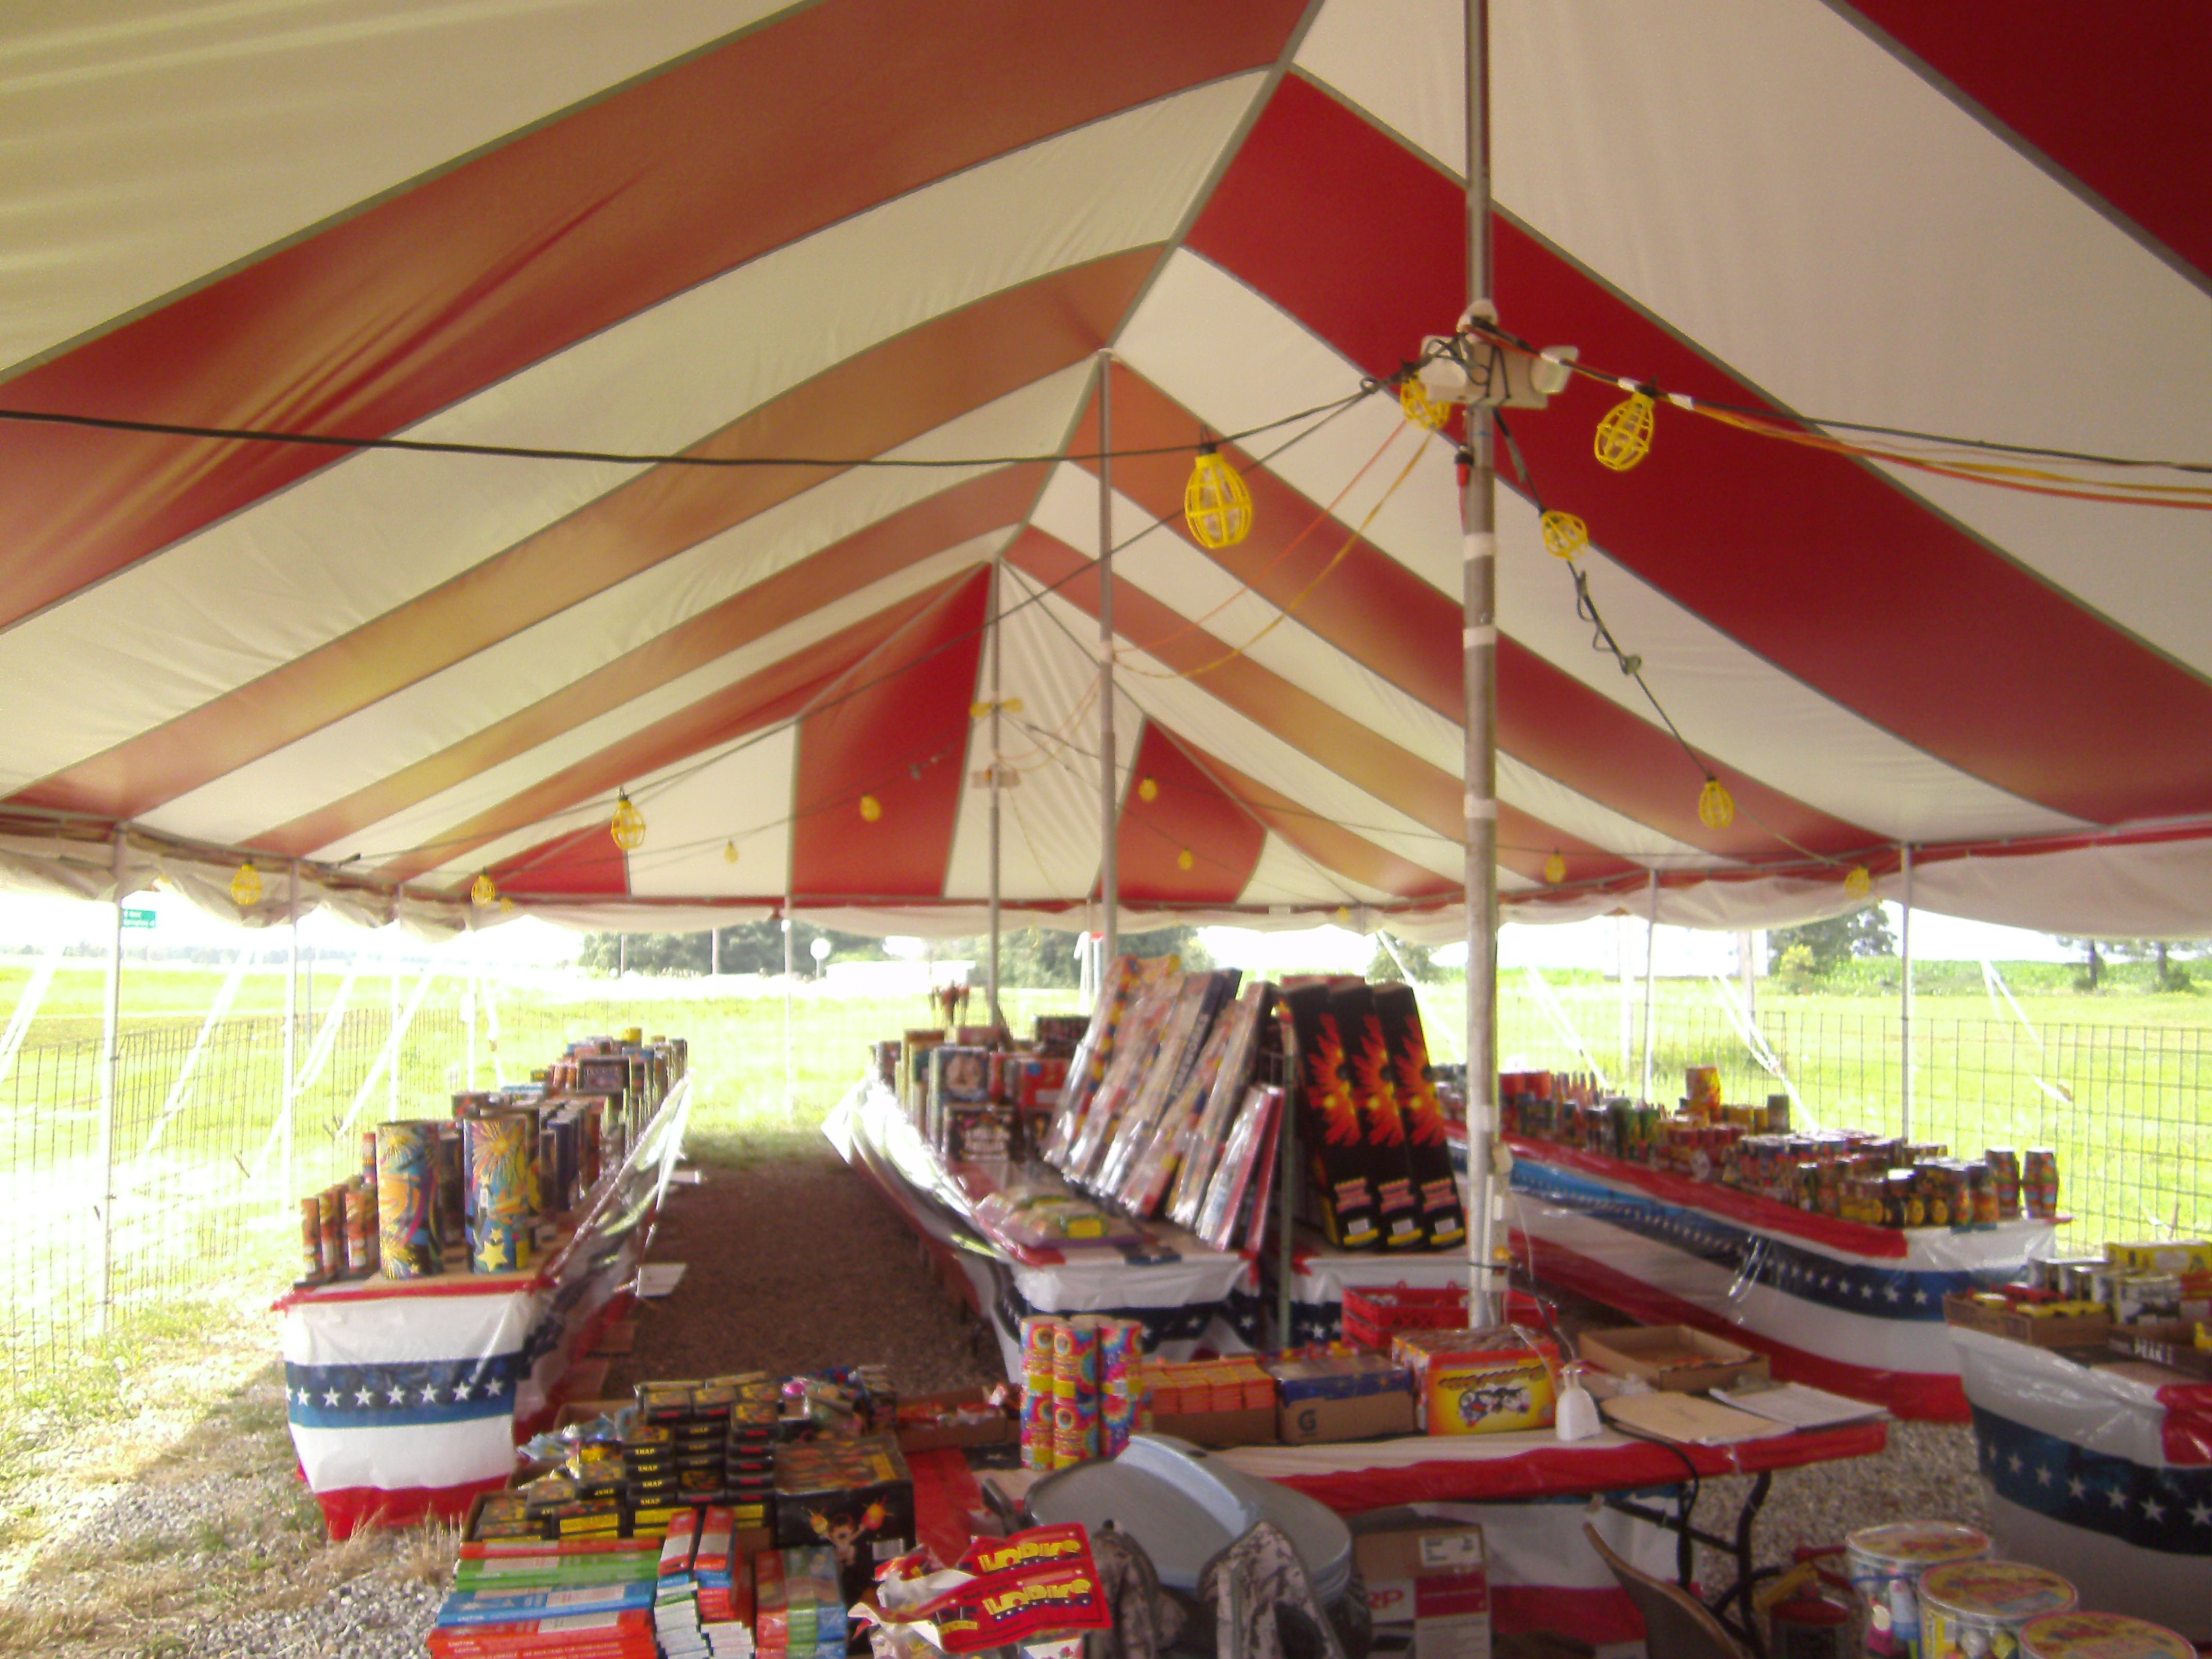 Used Party Tents For Sale >> 30 X 60 Pole Tent Used For Fireworks Tents For Fireworks And